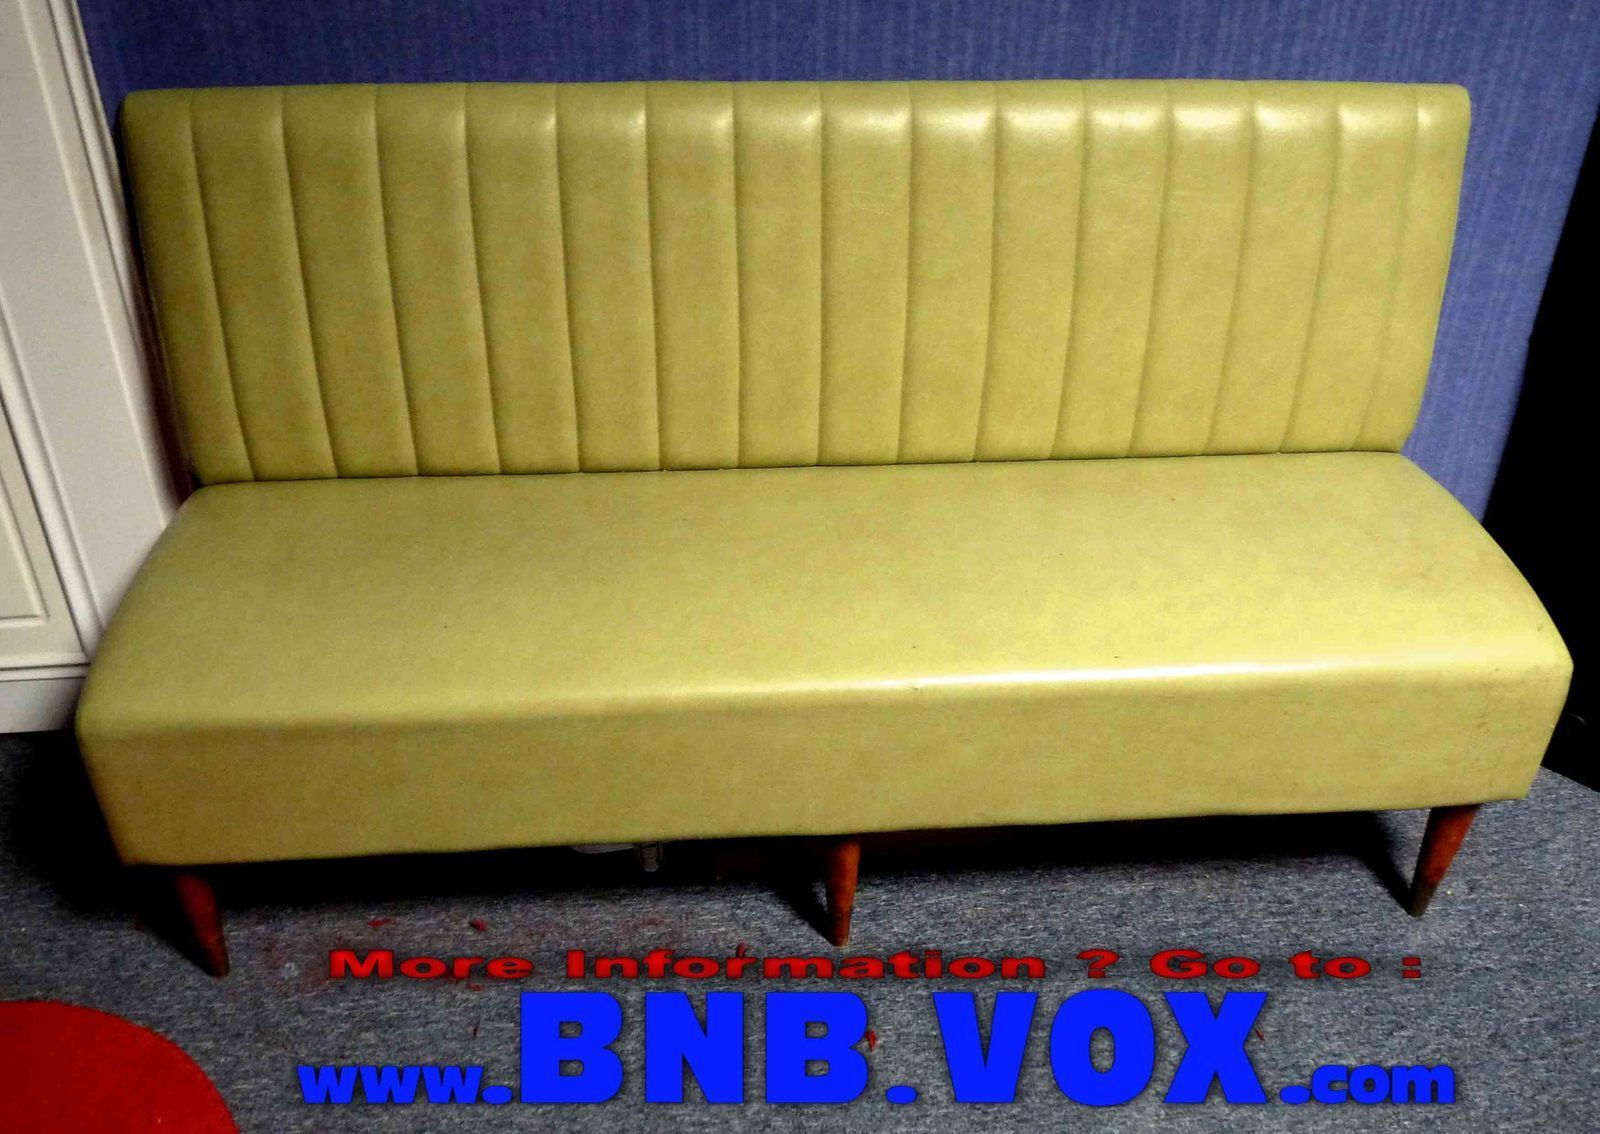 Ikea BLACK BOX Banquette 13AnnA13 Images